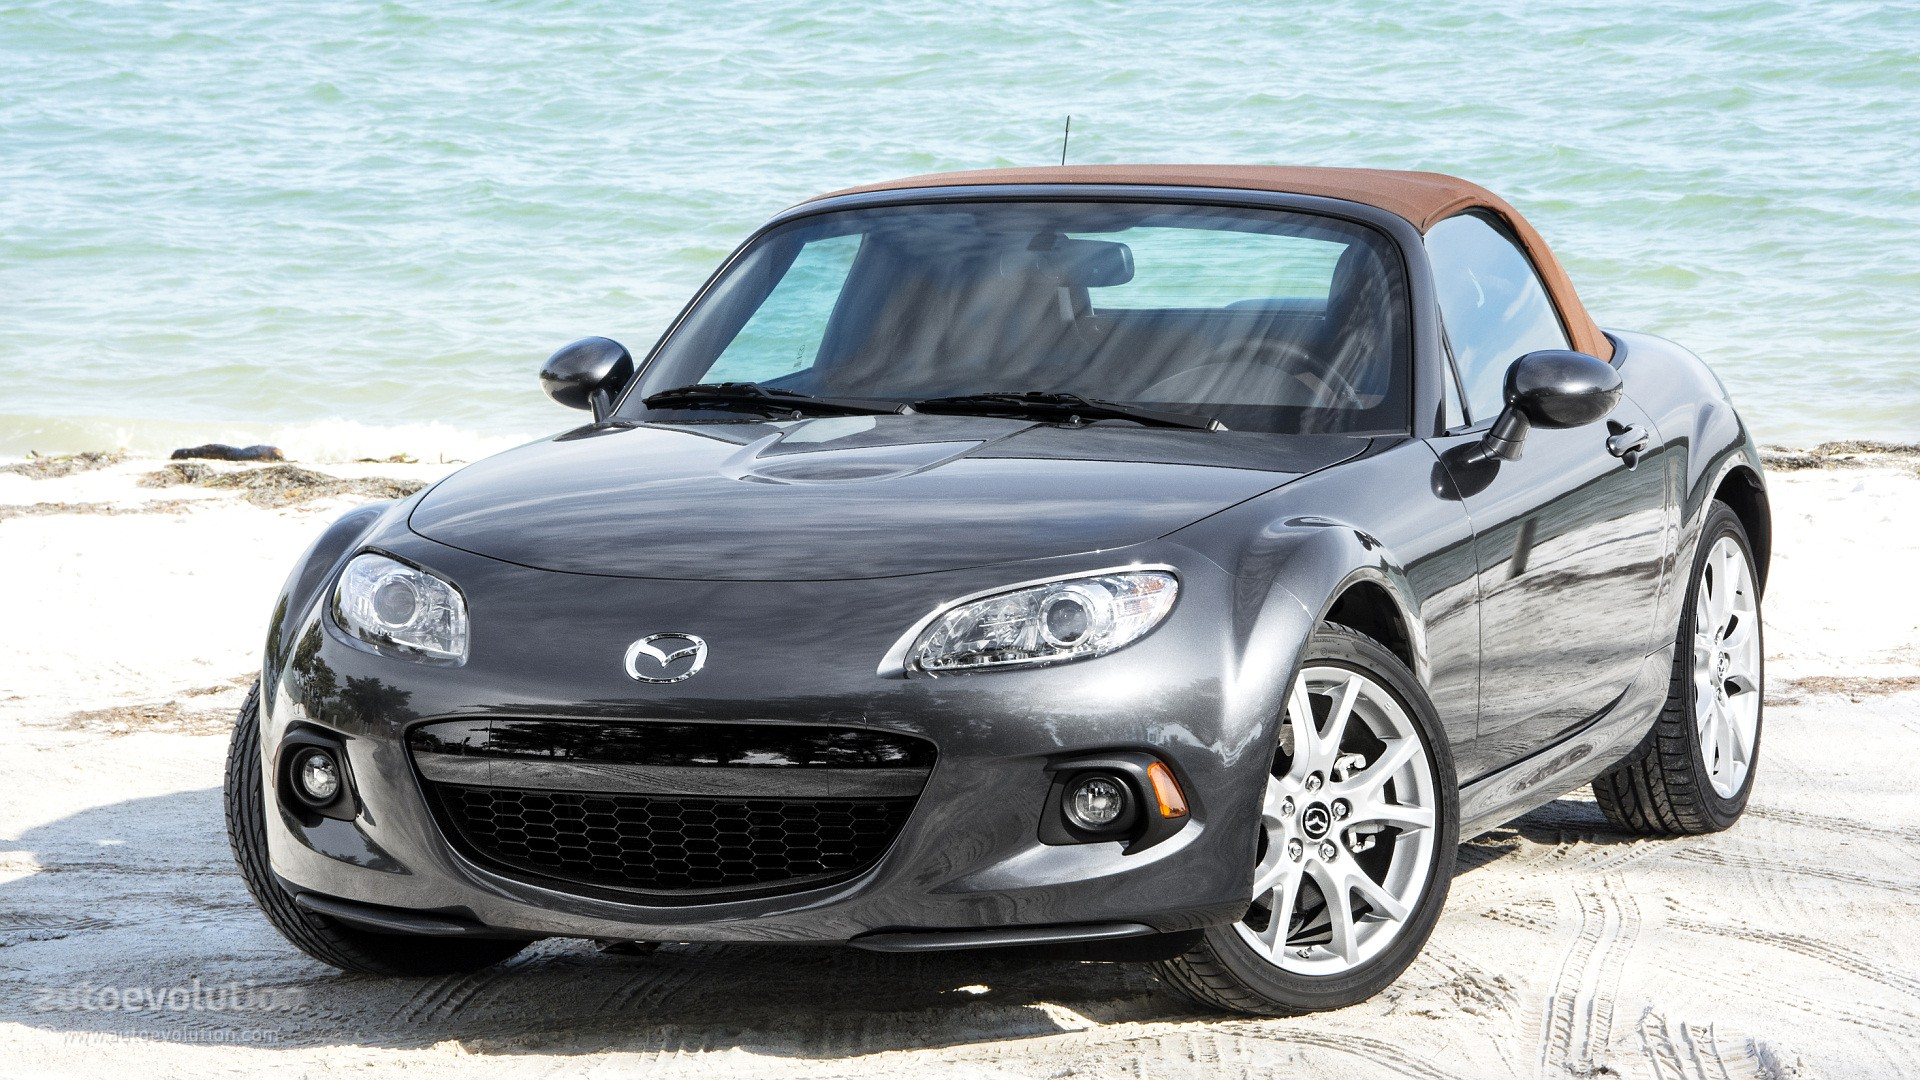 2015 Mazda MX-5 Miata Tested - A Future Classic - autoevolution